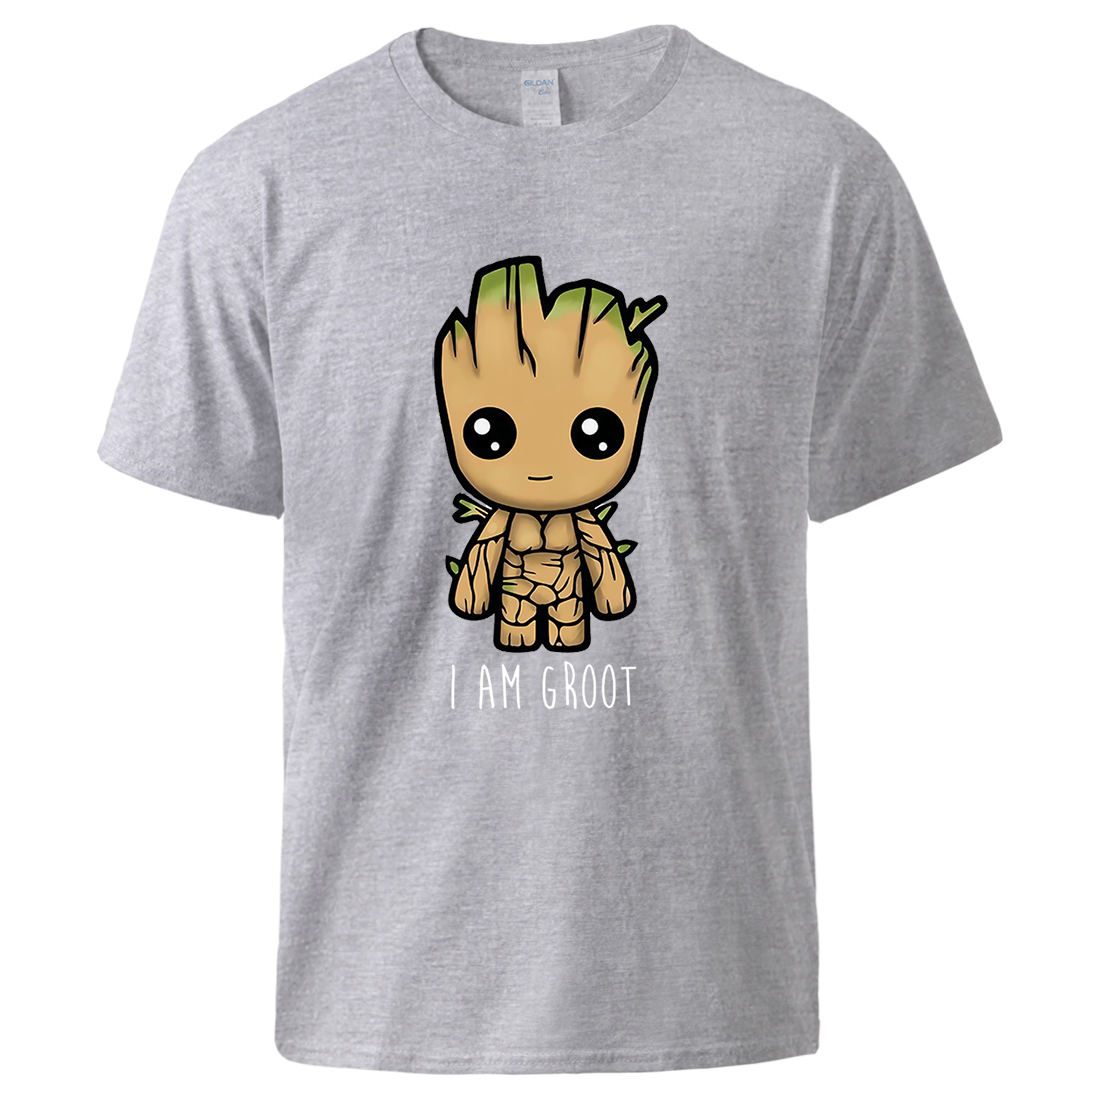 I Am Groot Cartoon T Shirts 2020 Summer High Quality Cotton Tshirts Short Sleeve Top Male Fashion Loose Fit Sportswear Tee Homme